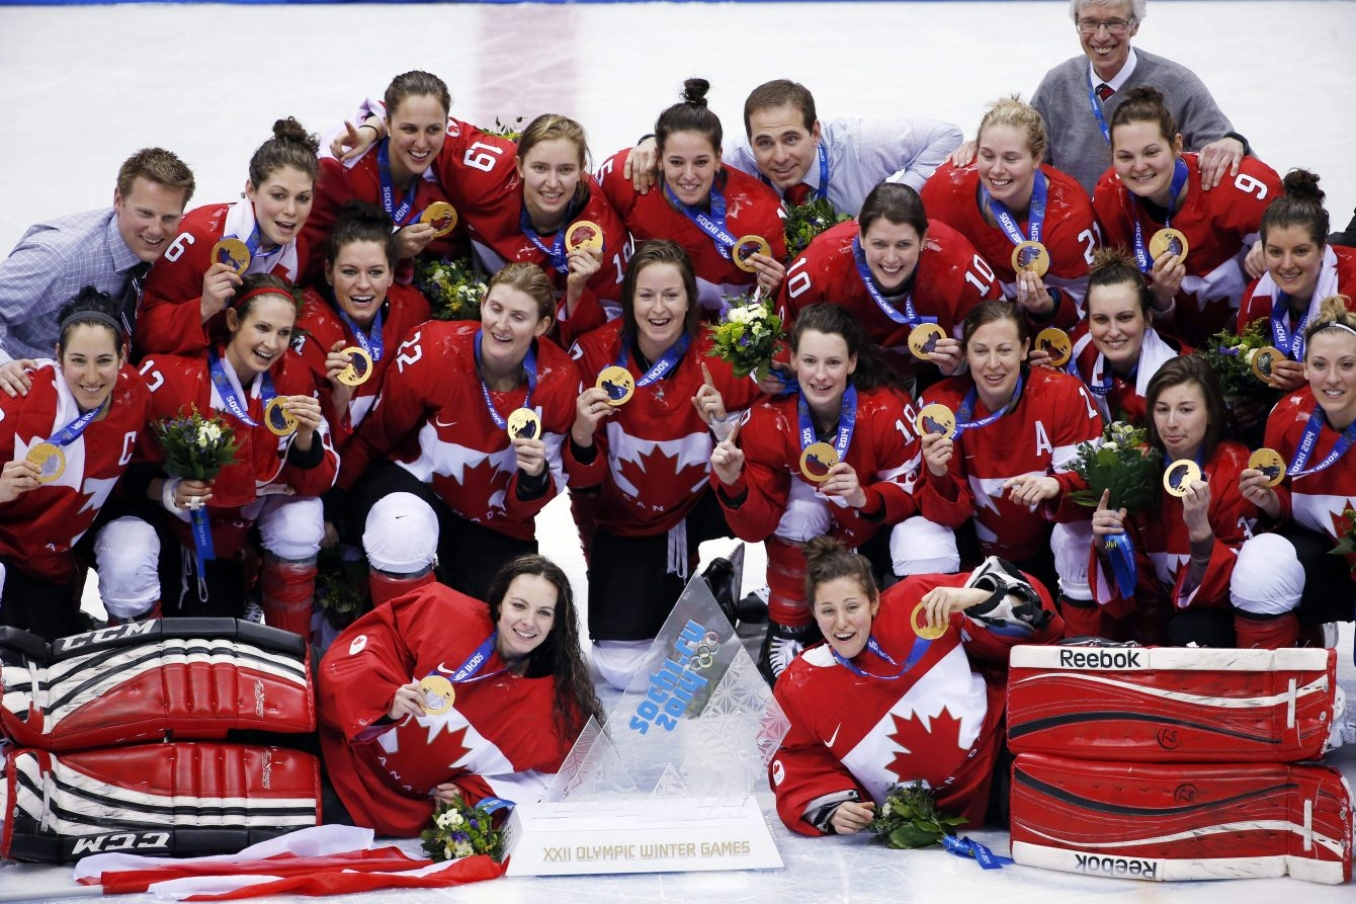 members of Team Canada pose for a photo with their gold medals